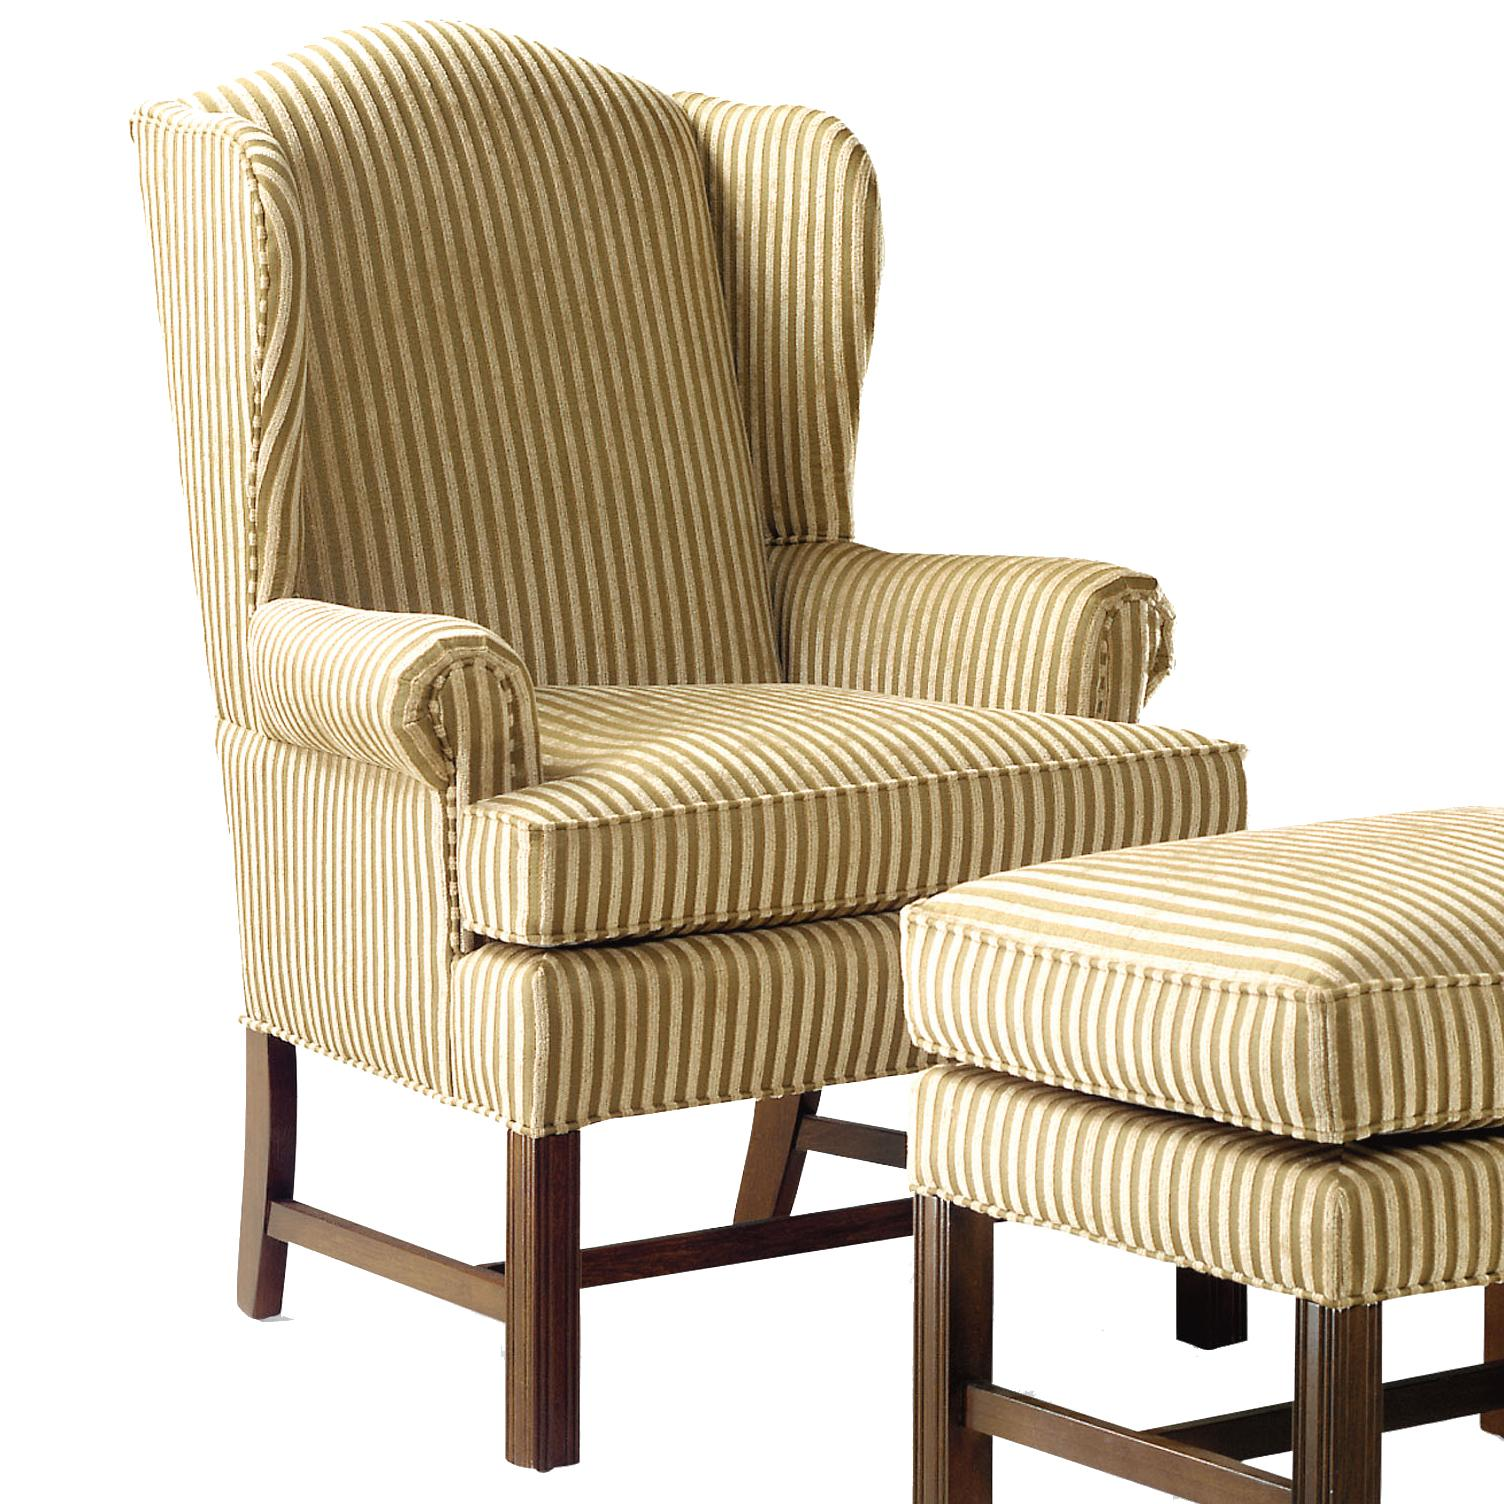 Fairfield 1072 Upholstered Wing Chair - Item Number: 1072-01